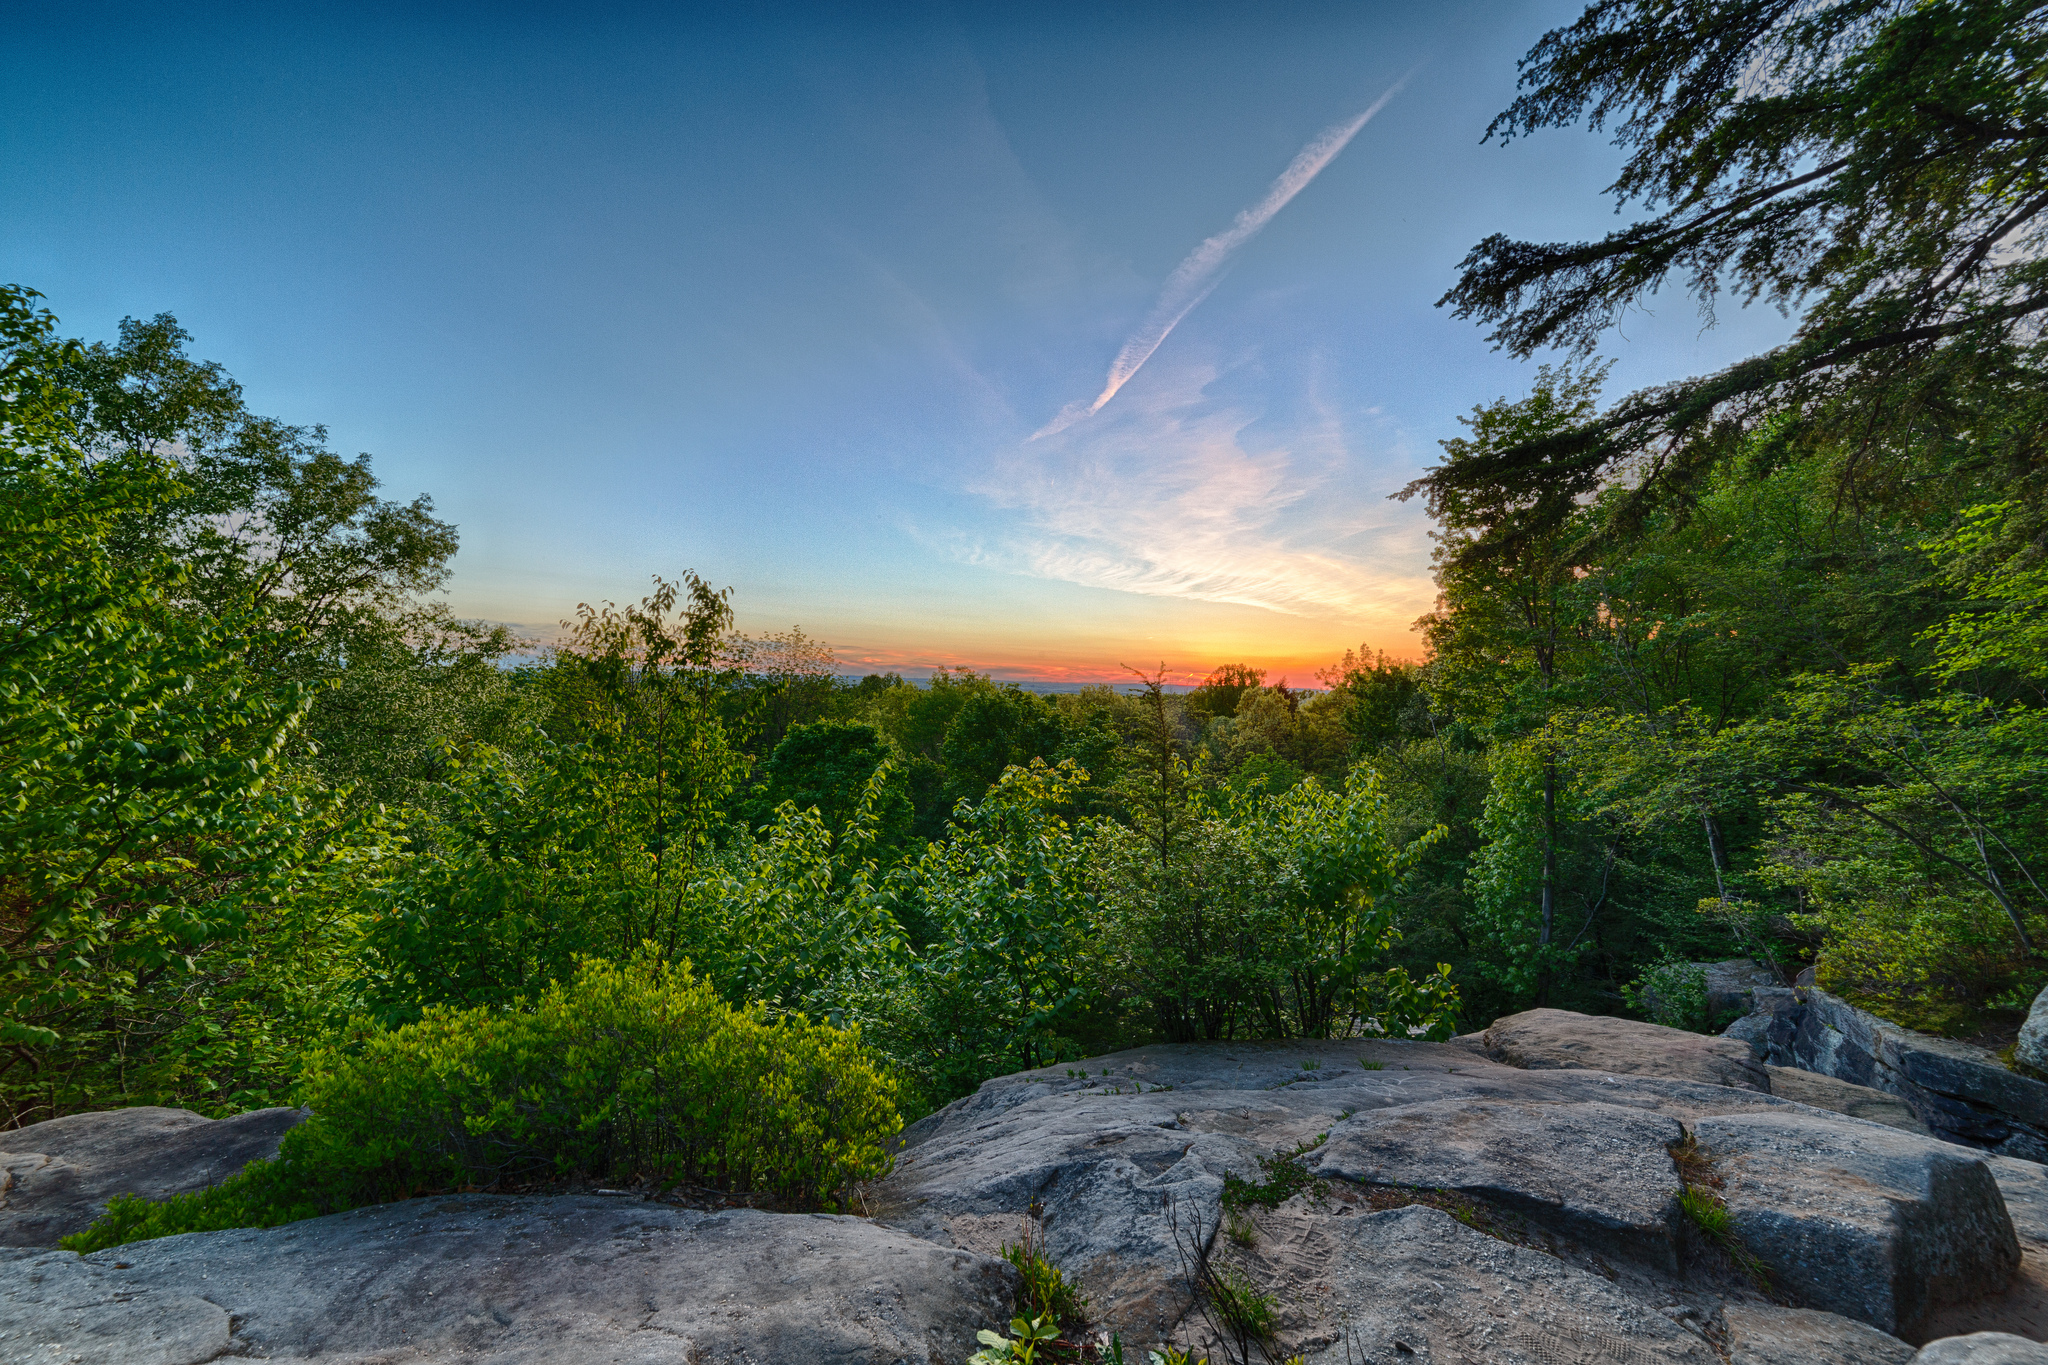 Cuyahoga Valley National Park: One Of Ohio's Best Parks